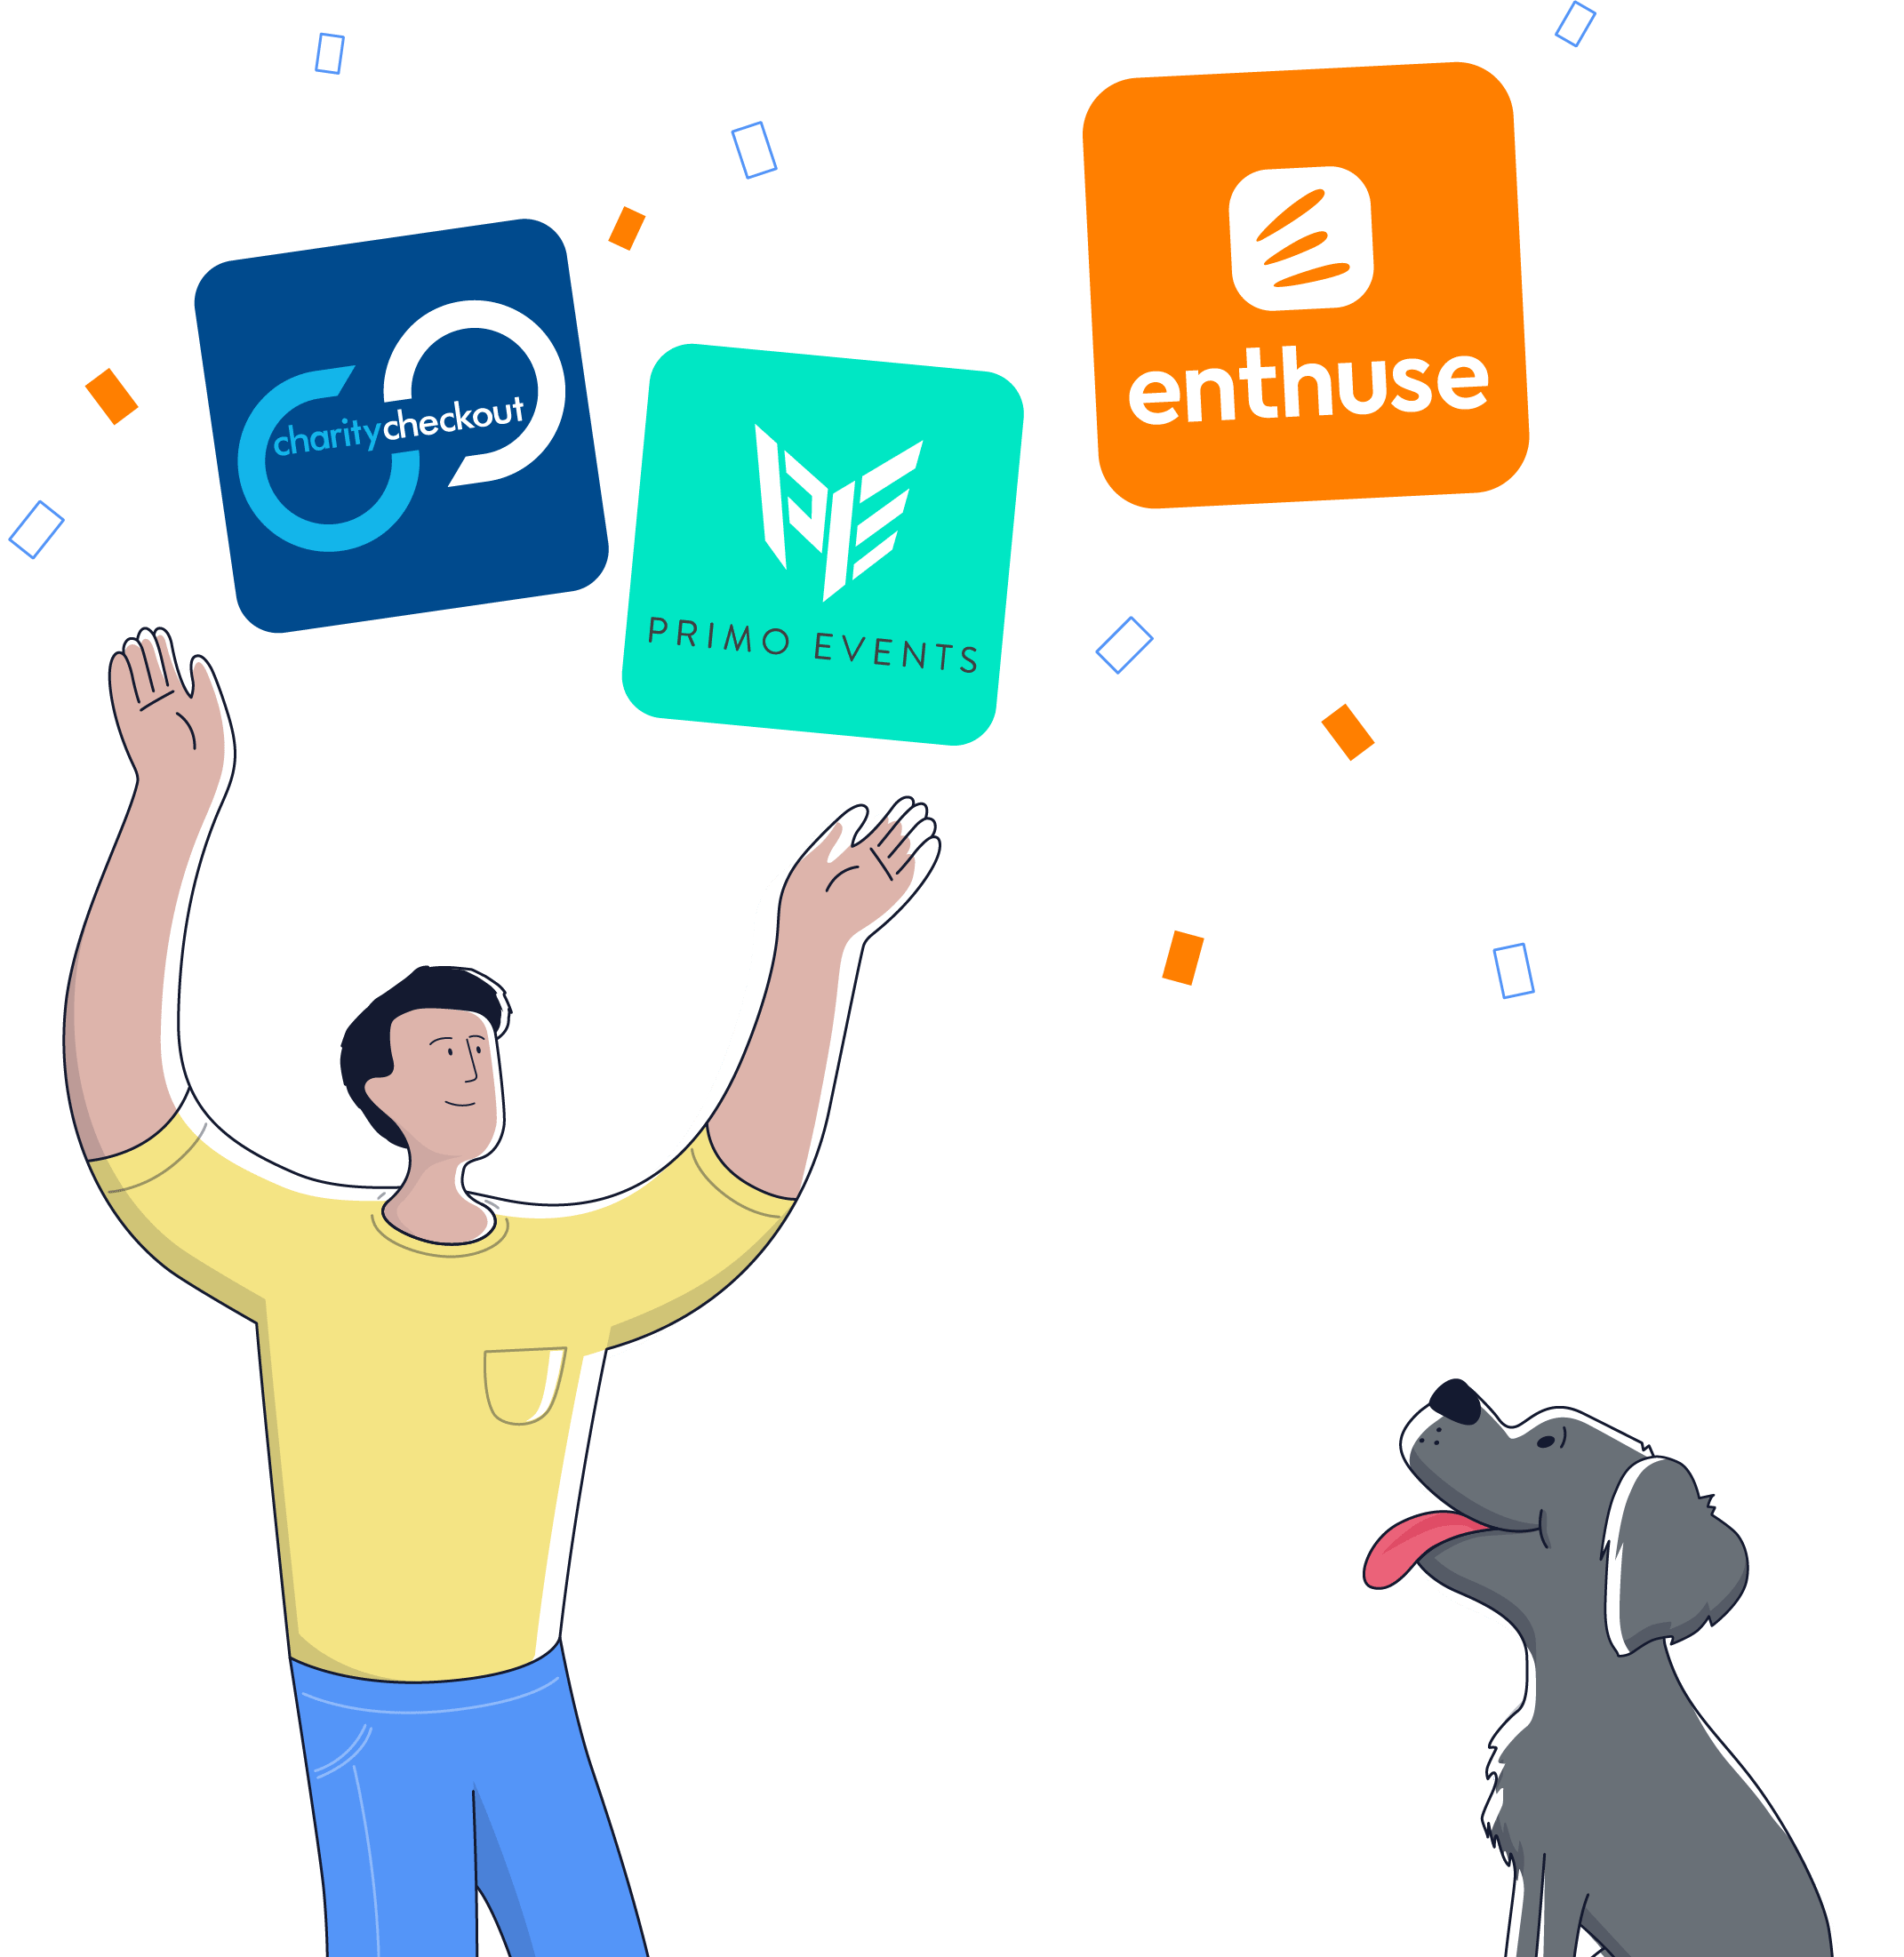 Graphic showing that Enthuse was born from the fusion of CharityCheckout and Primo Events